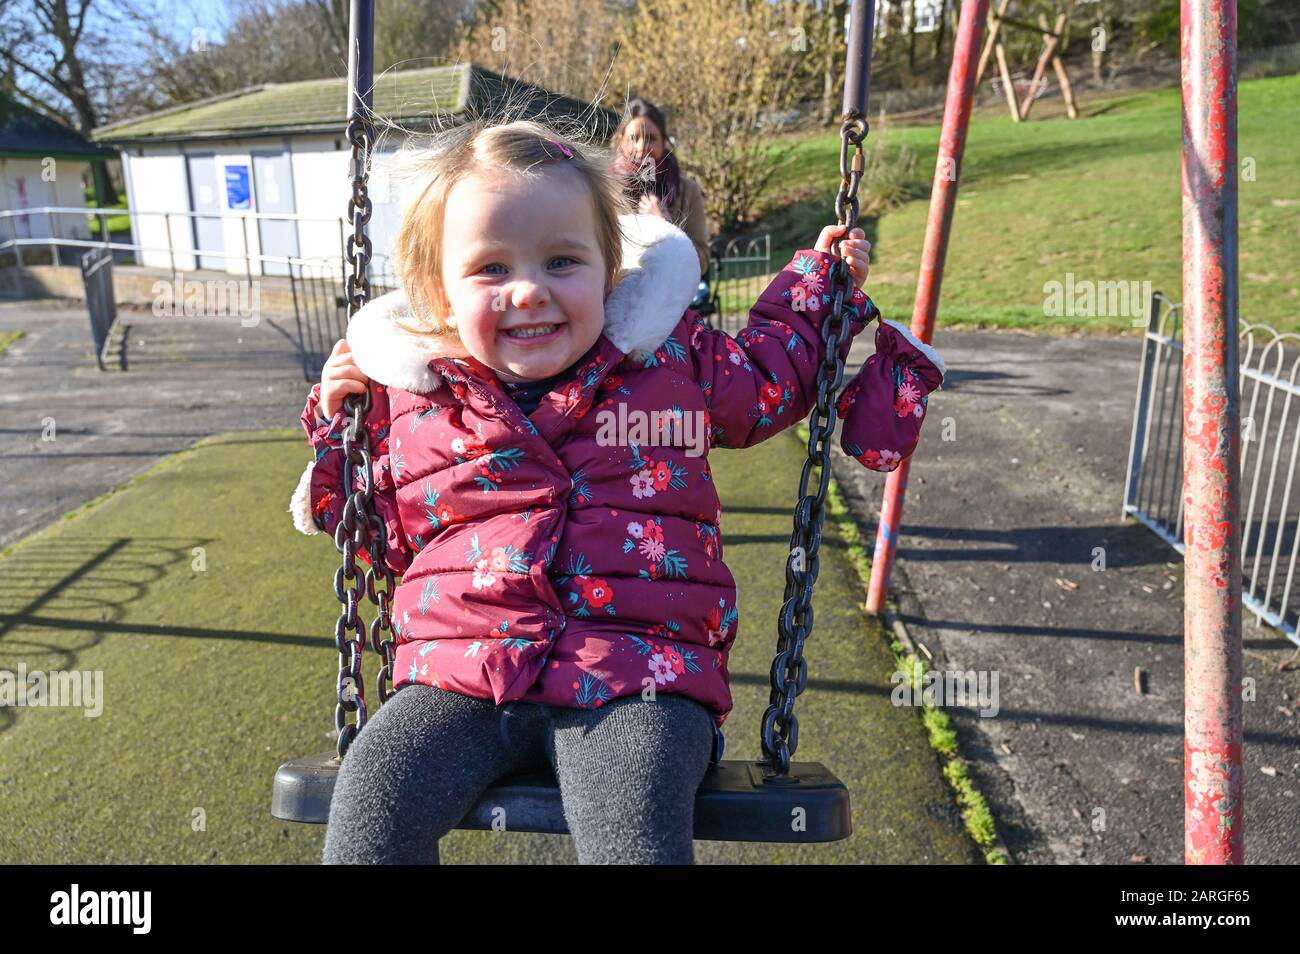 Brighton UK 28th January 2020 - 3 year old Isabella enjoys a ride on the swings in Queens Park Brighton with her mum pushing on a beautiful sunny but cold day in Britain . Credit: Simon Dack / Alamy Live News Stock Photo